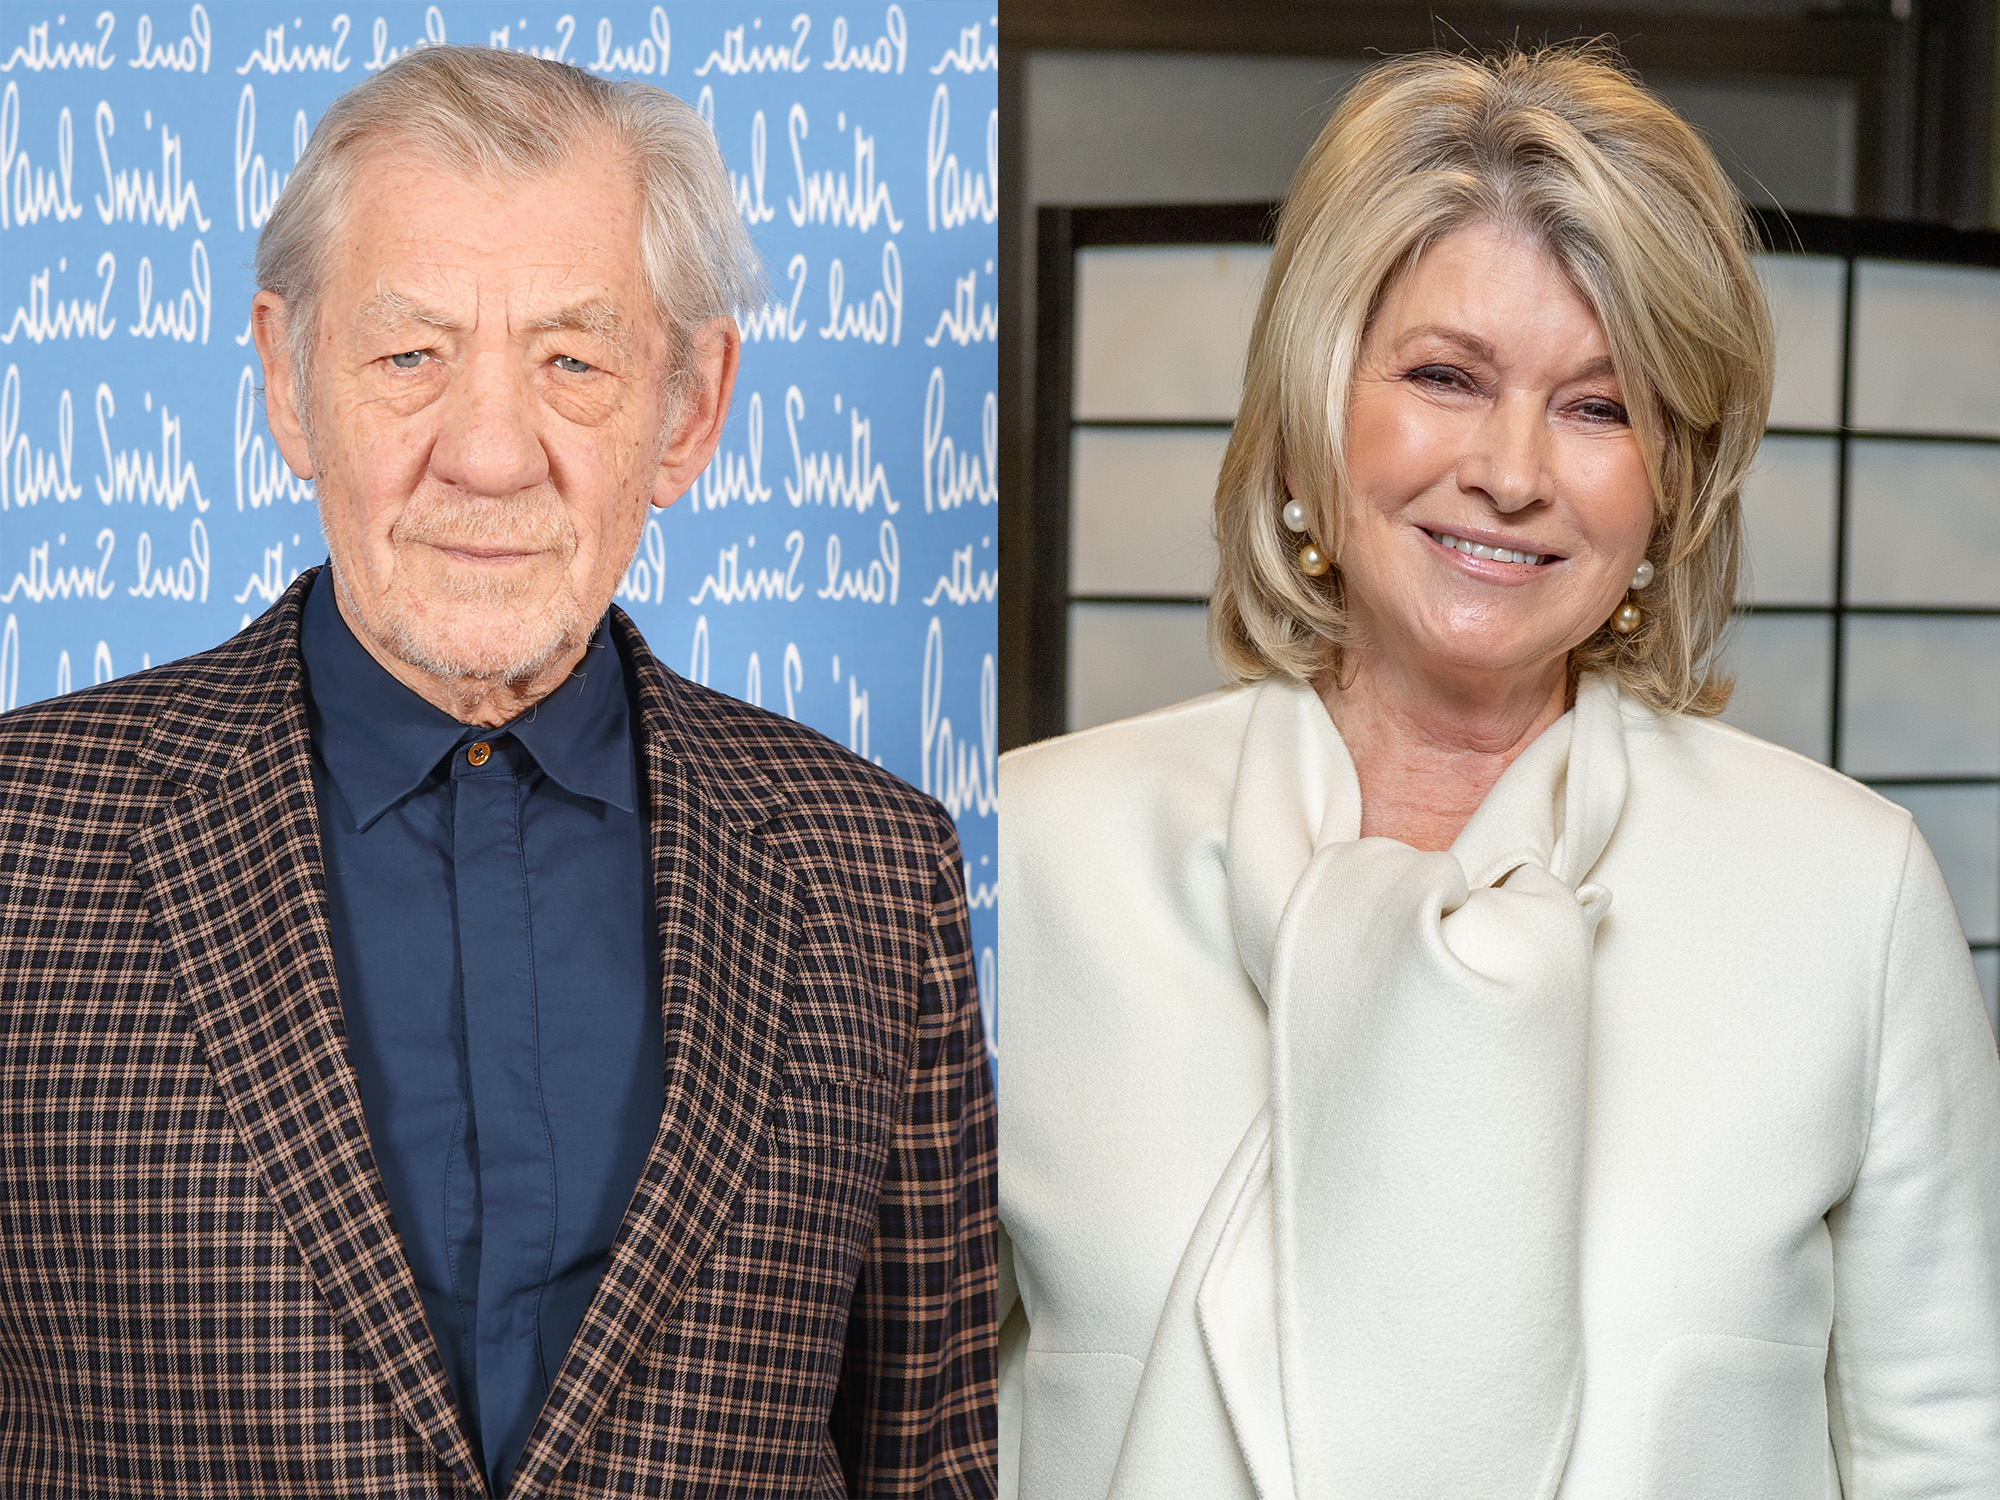 Ian McKellen and Martha Stewart